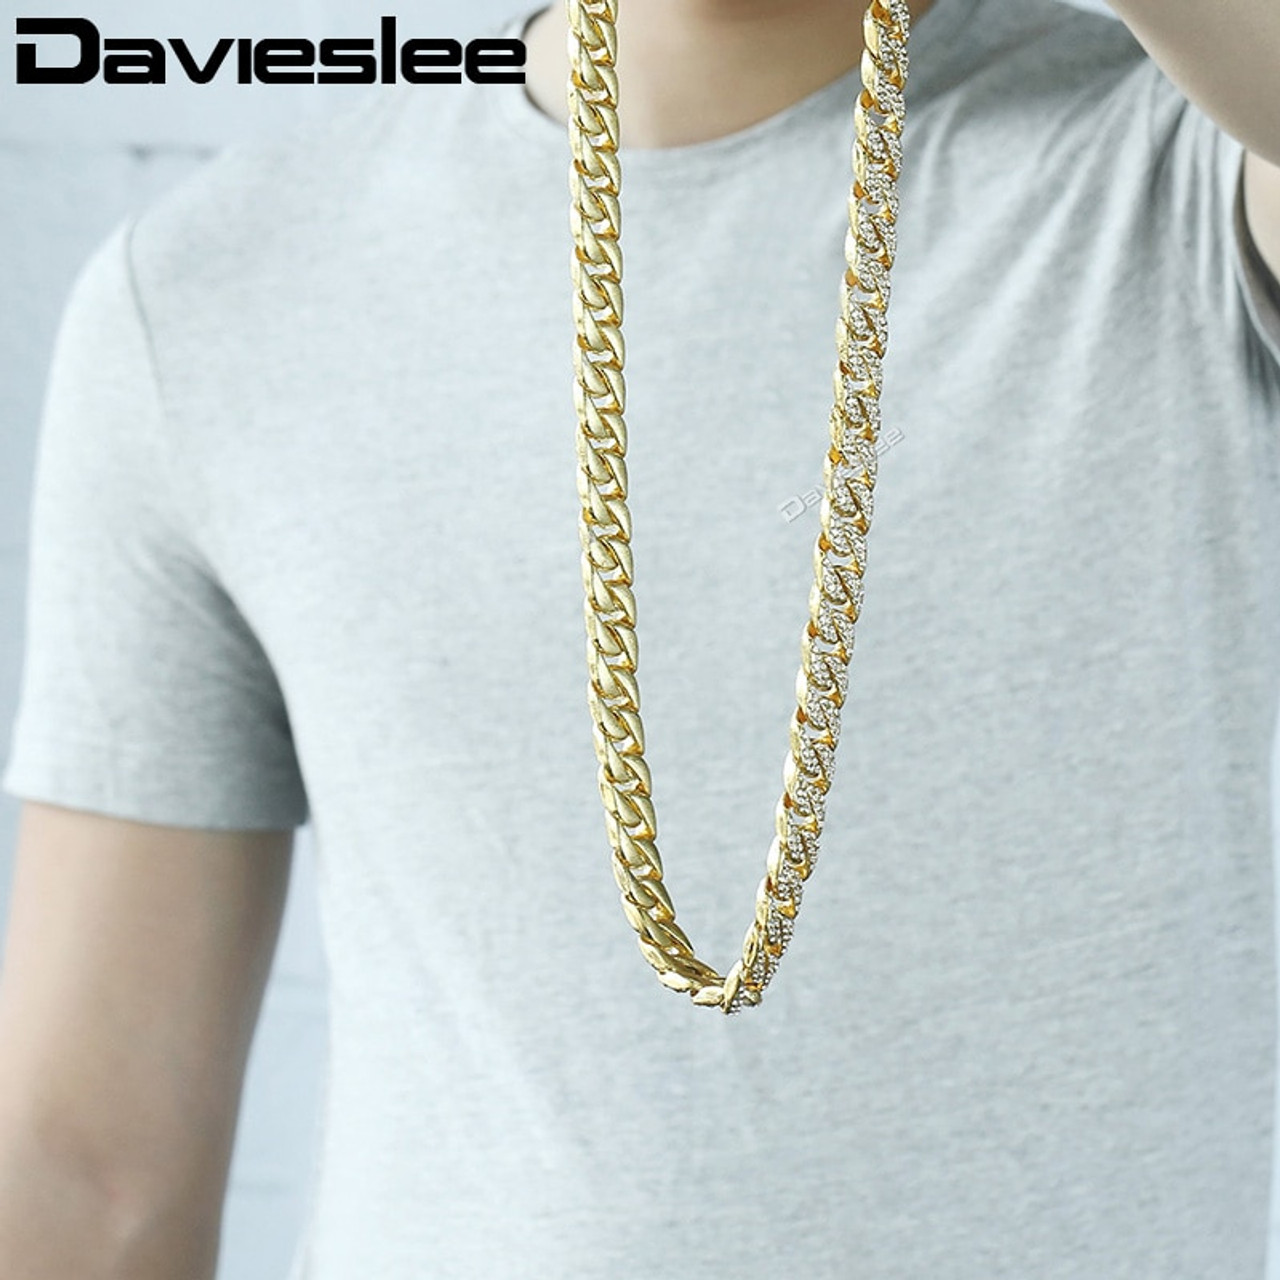 Davieslee Men S Gold Necklace Miami Curb Cuban Chain Necklaces For